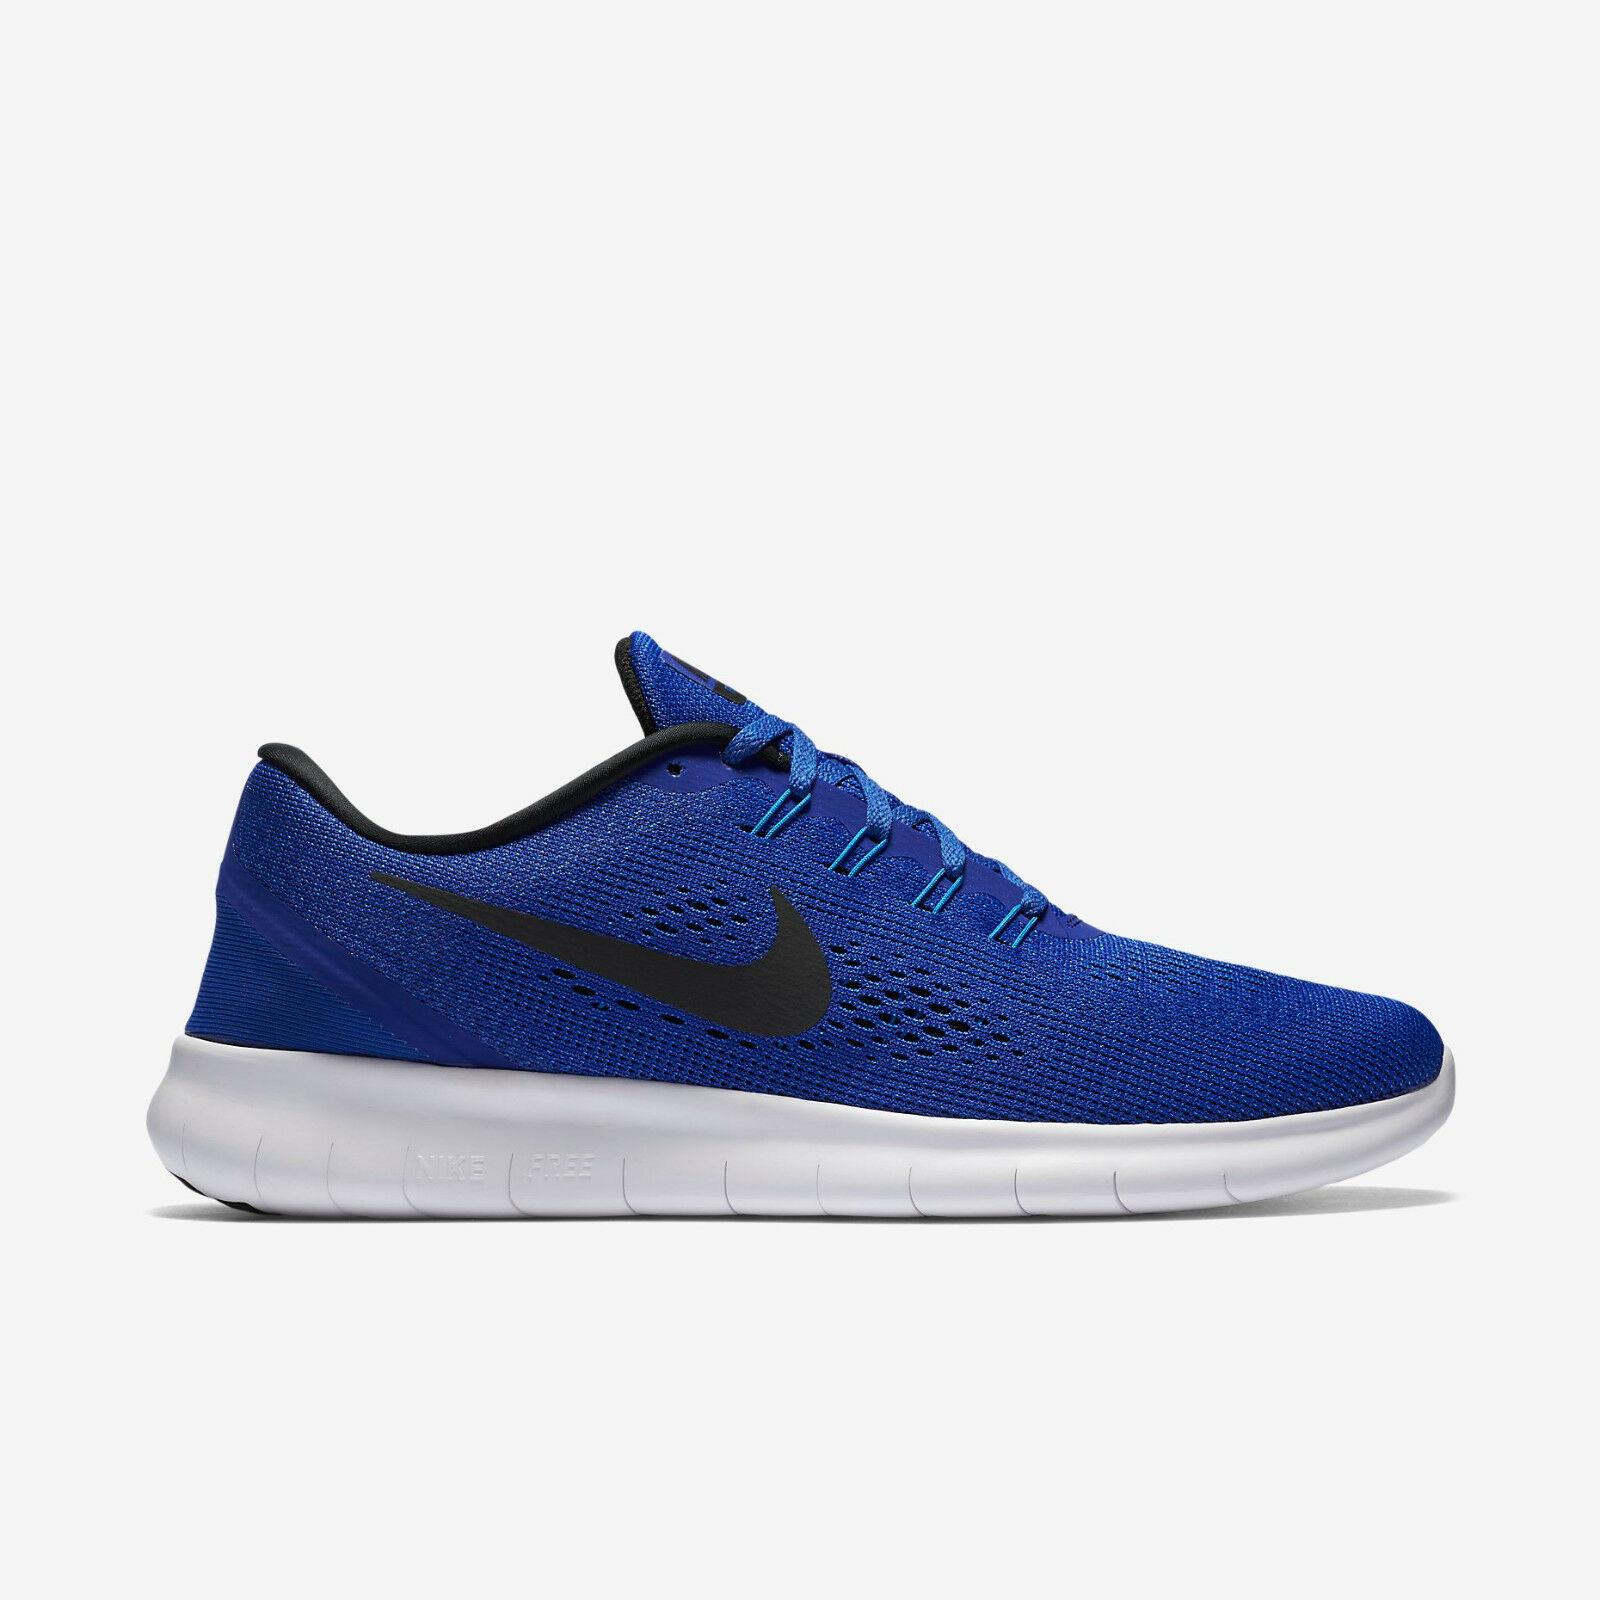 NIKE Free RN New  Uomo Trainers Royal Blau Running Schuhes 100% Authentic